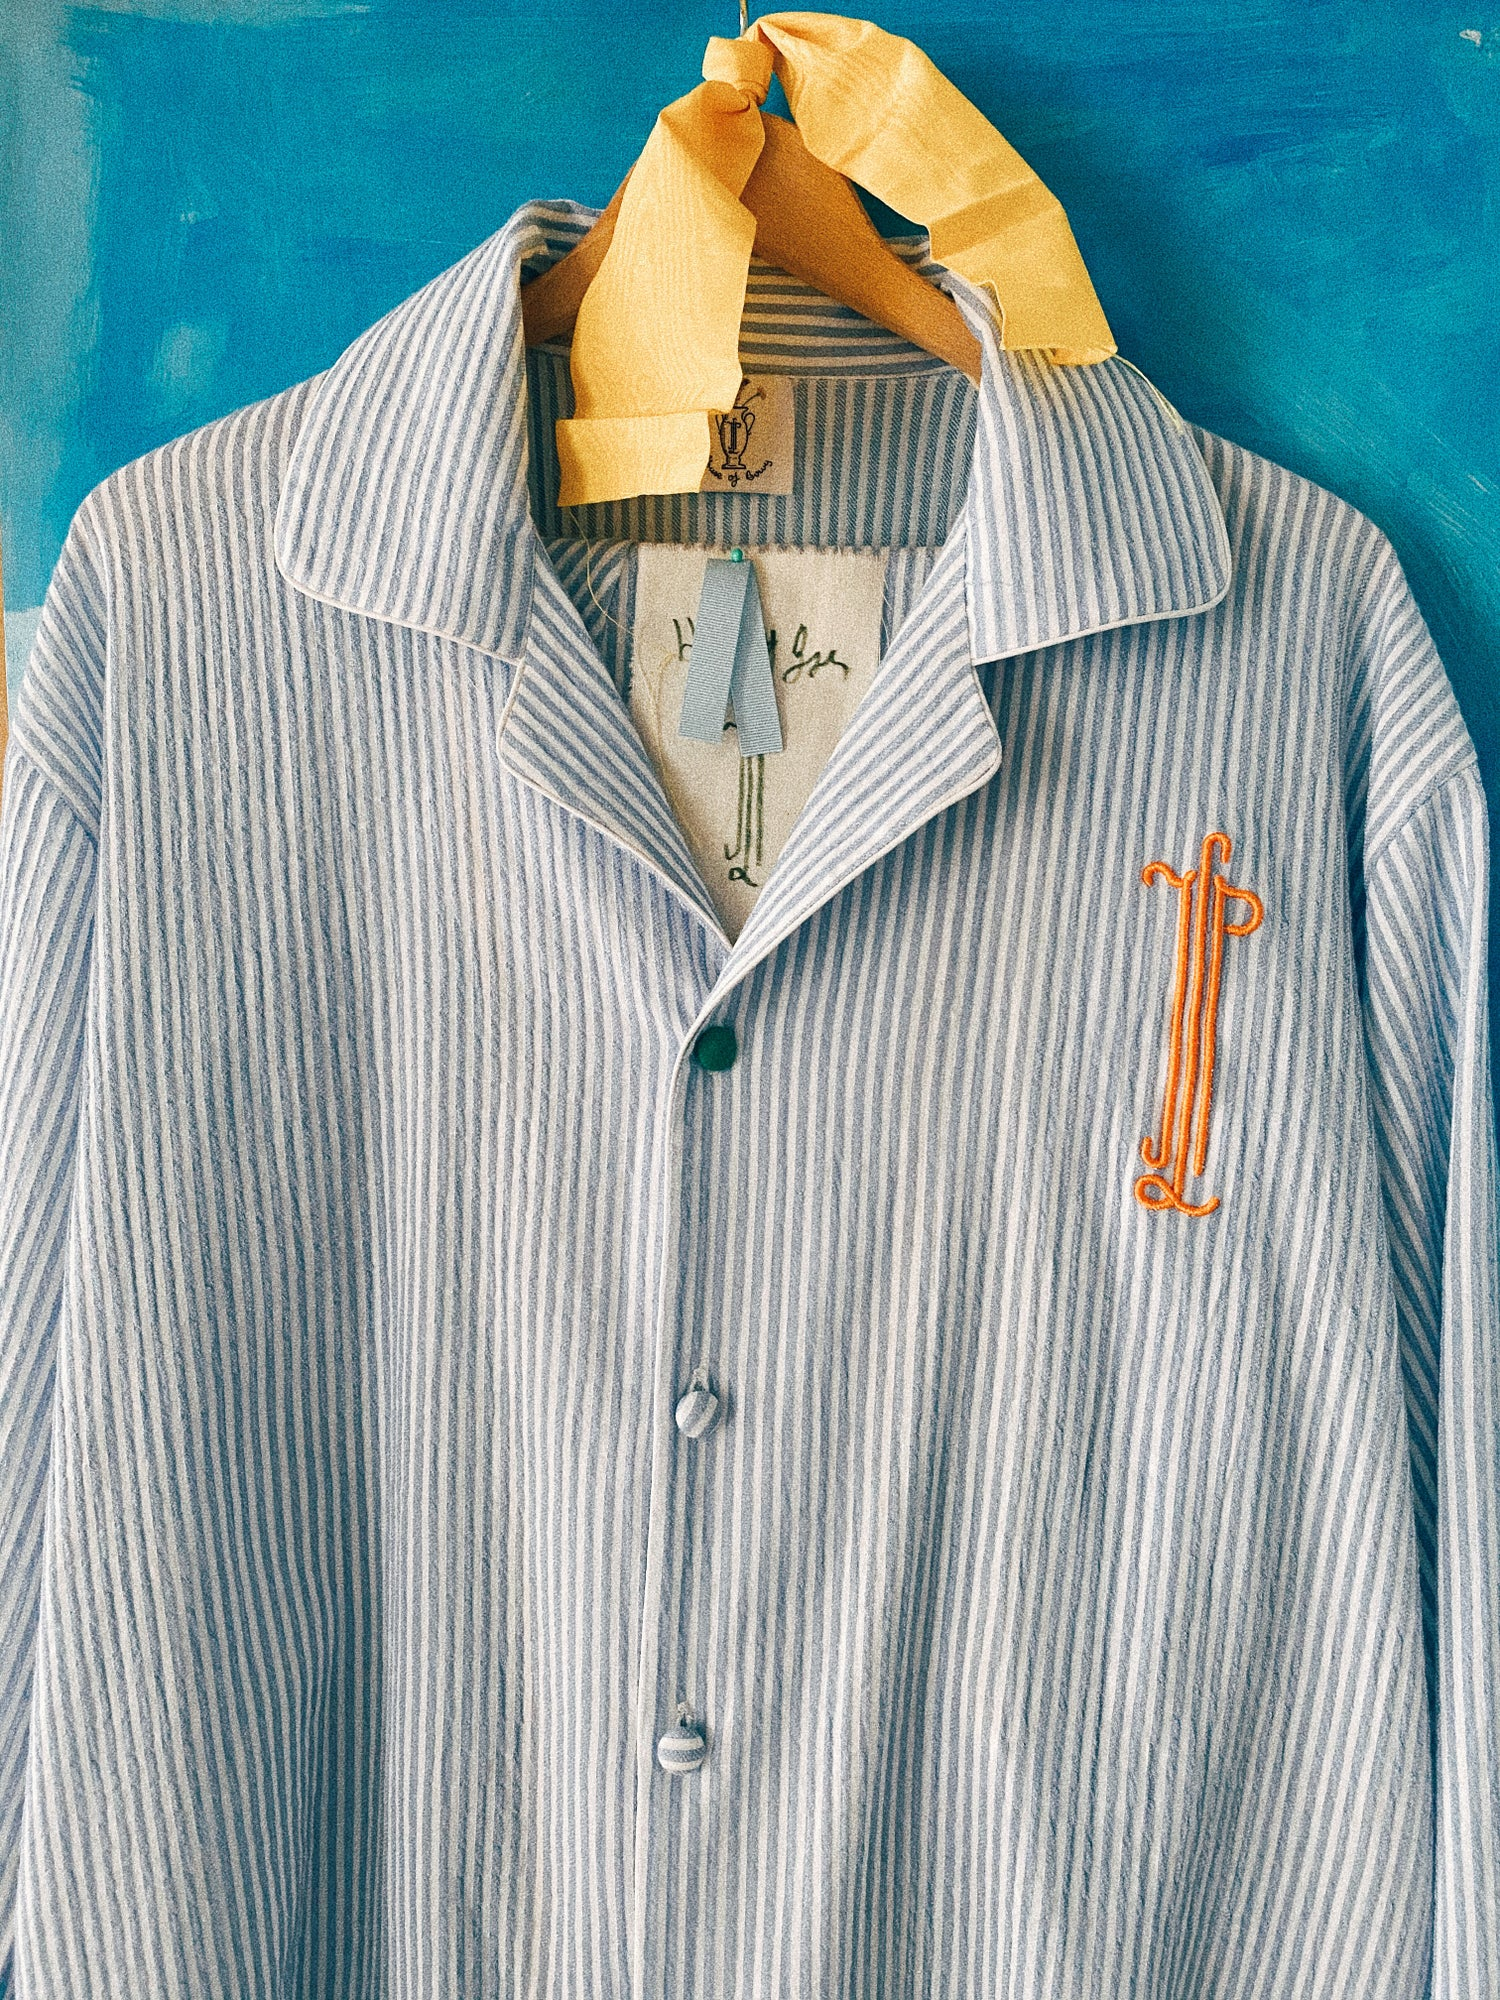 Image of Blue stripes  Old cotton shirt 1/1 Limited edition